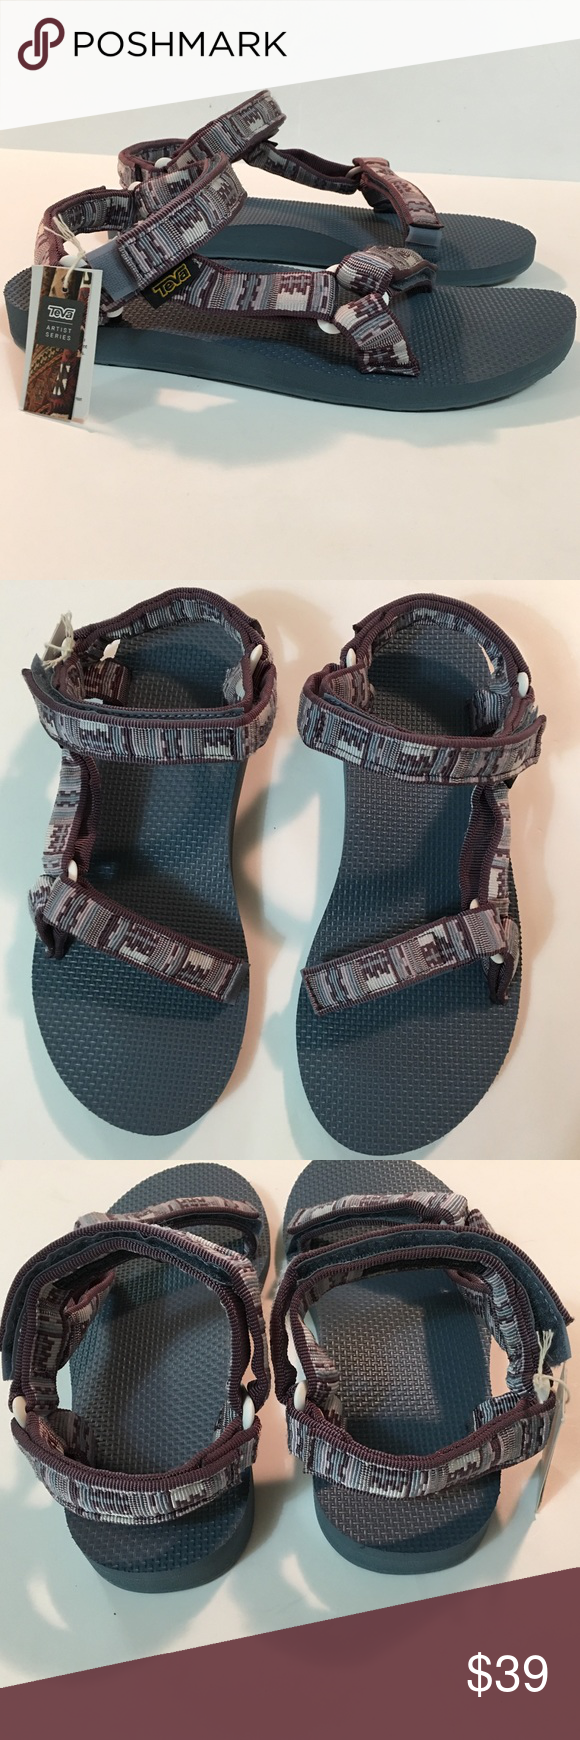 b6721981a Teva Womens Original Universal Sandal Inca Plum Slight snag shown in  picture otherwise excellent condition. Teva Womens Original Universal Sport Sandal  Inca ...